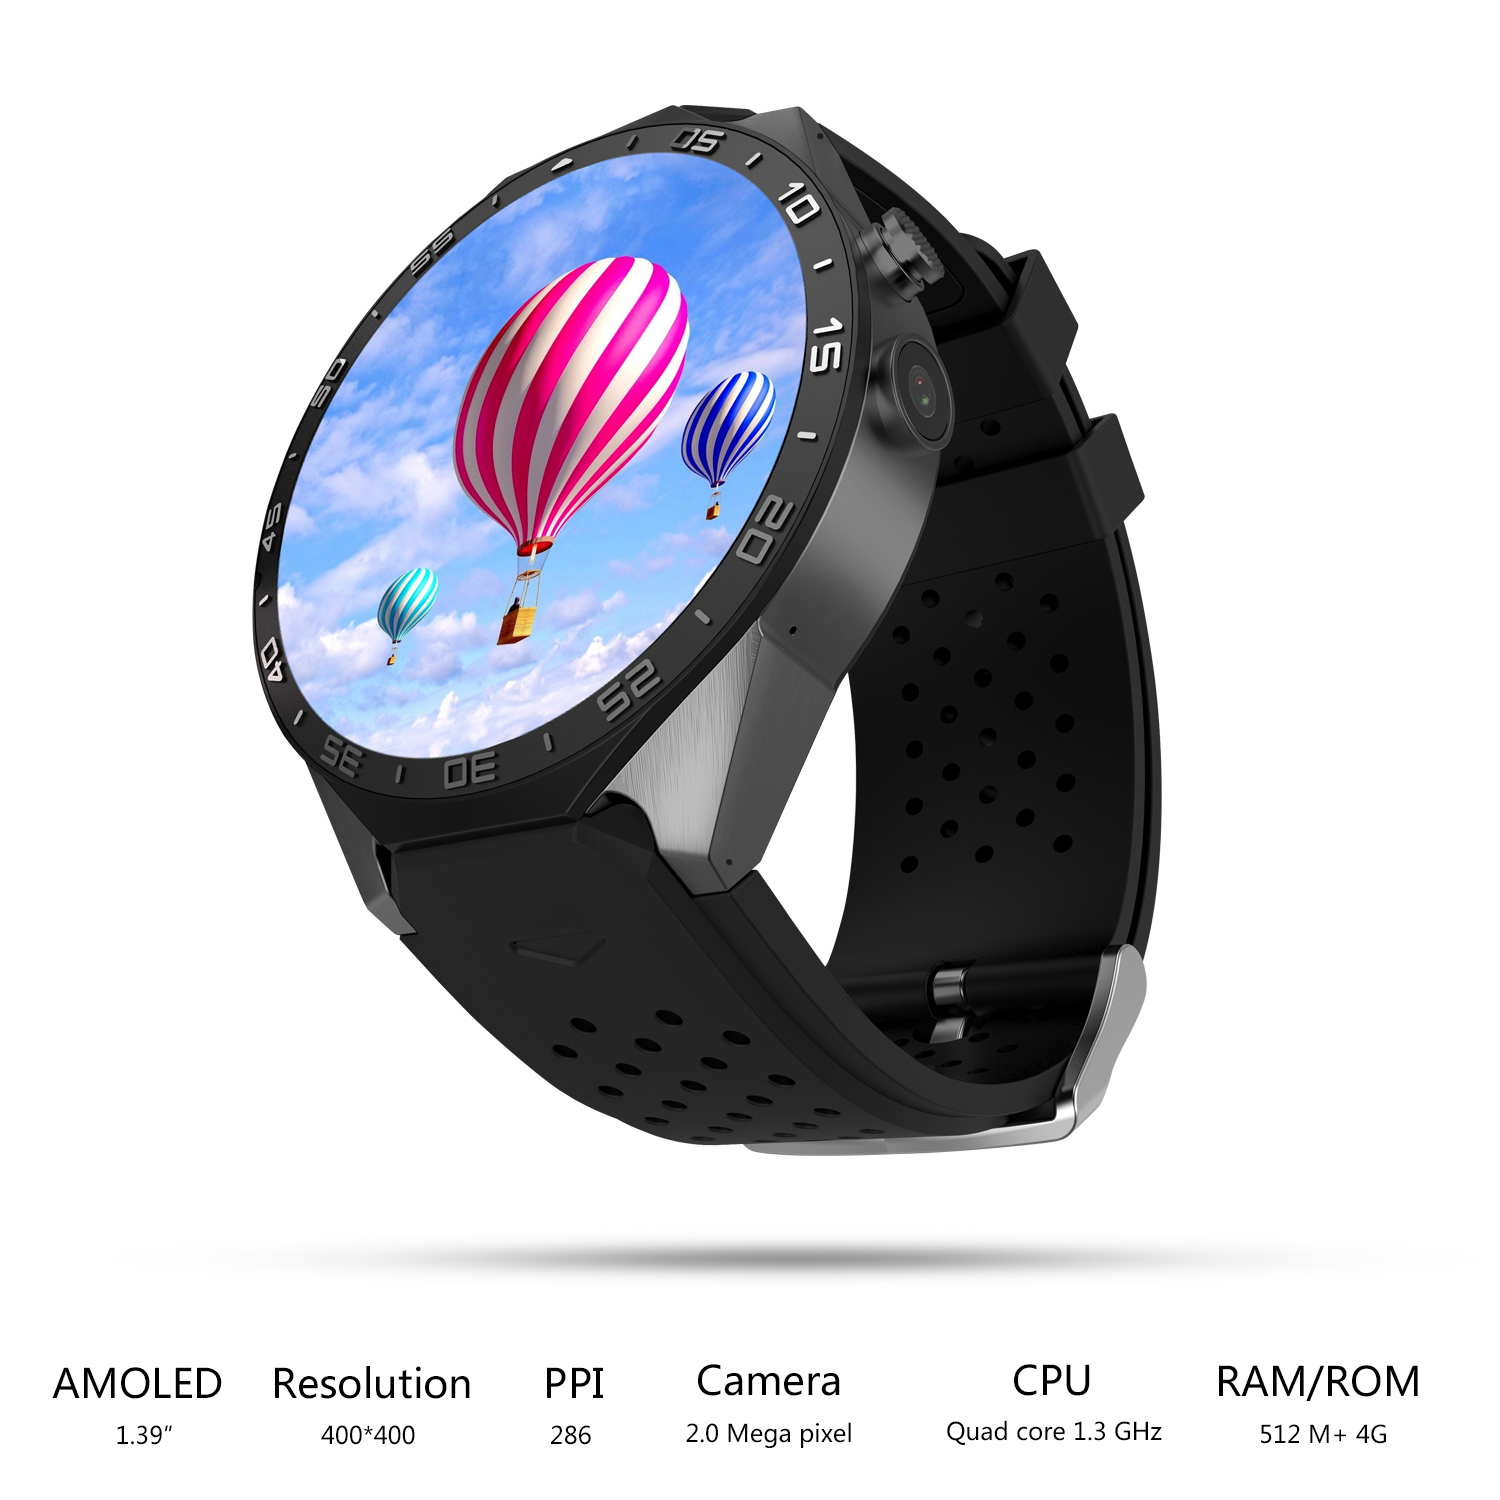 ot03 2017 Hot Kw88 android 5.1 OS Smart watch 1.39 inch 400*400 SmartWatch phone support 3G wifi nano SIM WCDMA Heart Rate kw88 smart watch android 5 1 os quad core 400 400 smartwatch mtk6580 support 3g wifi nano sim card gps heart rate wristwatch